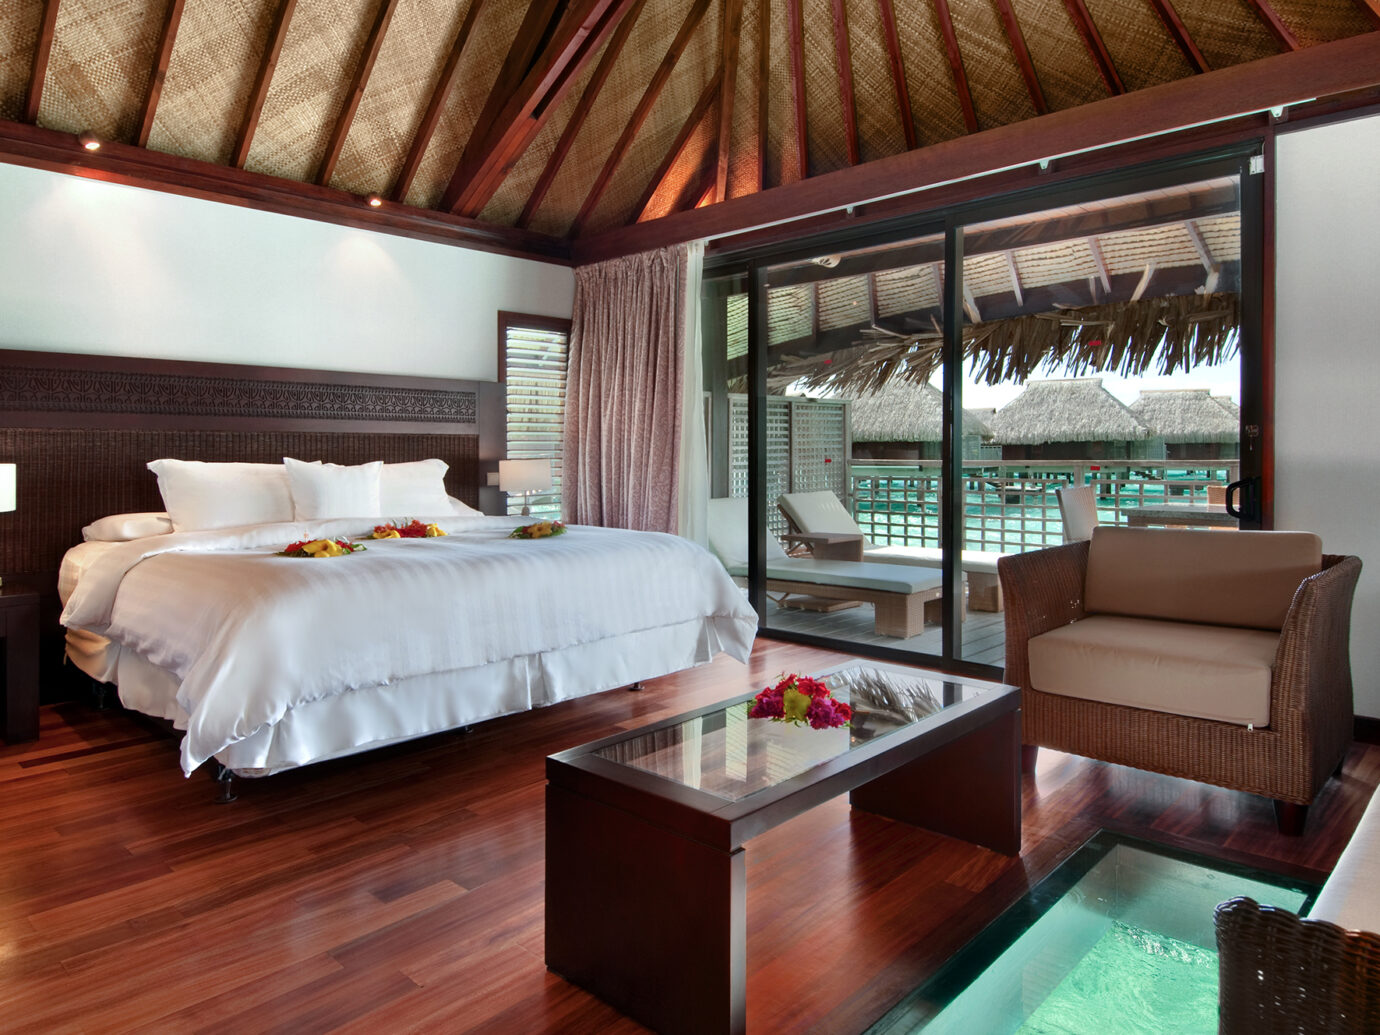 Bedroom at Hilton Moorea